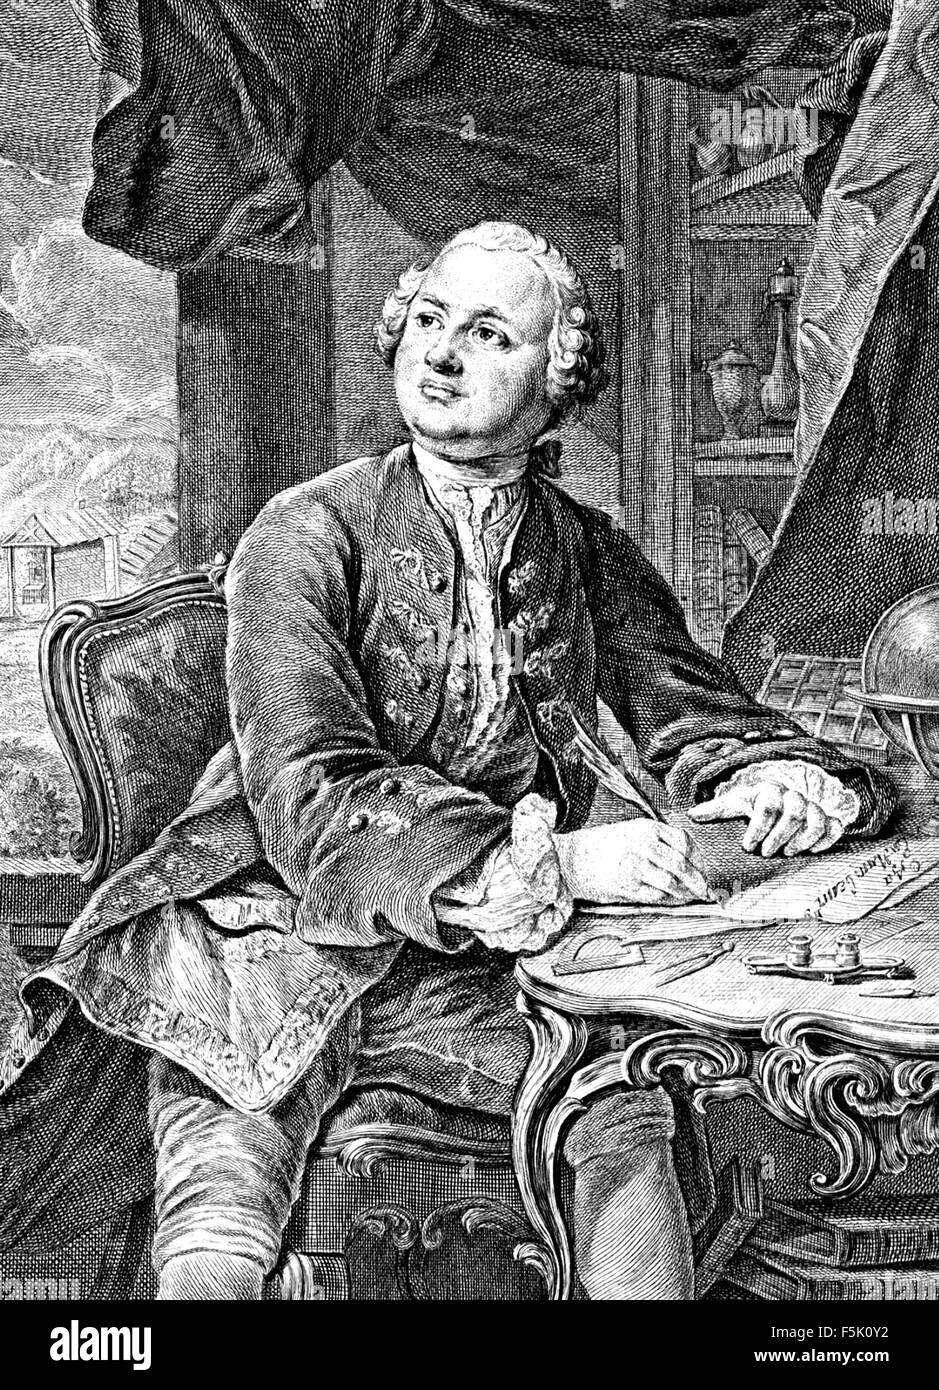 MIKHAIL LOMONOSOV (1711-1765) Russian scientist - Stock Image